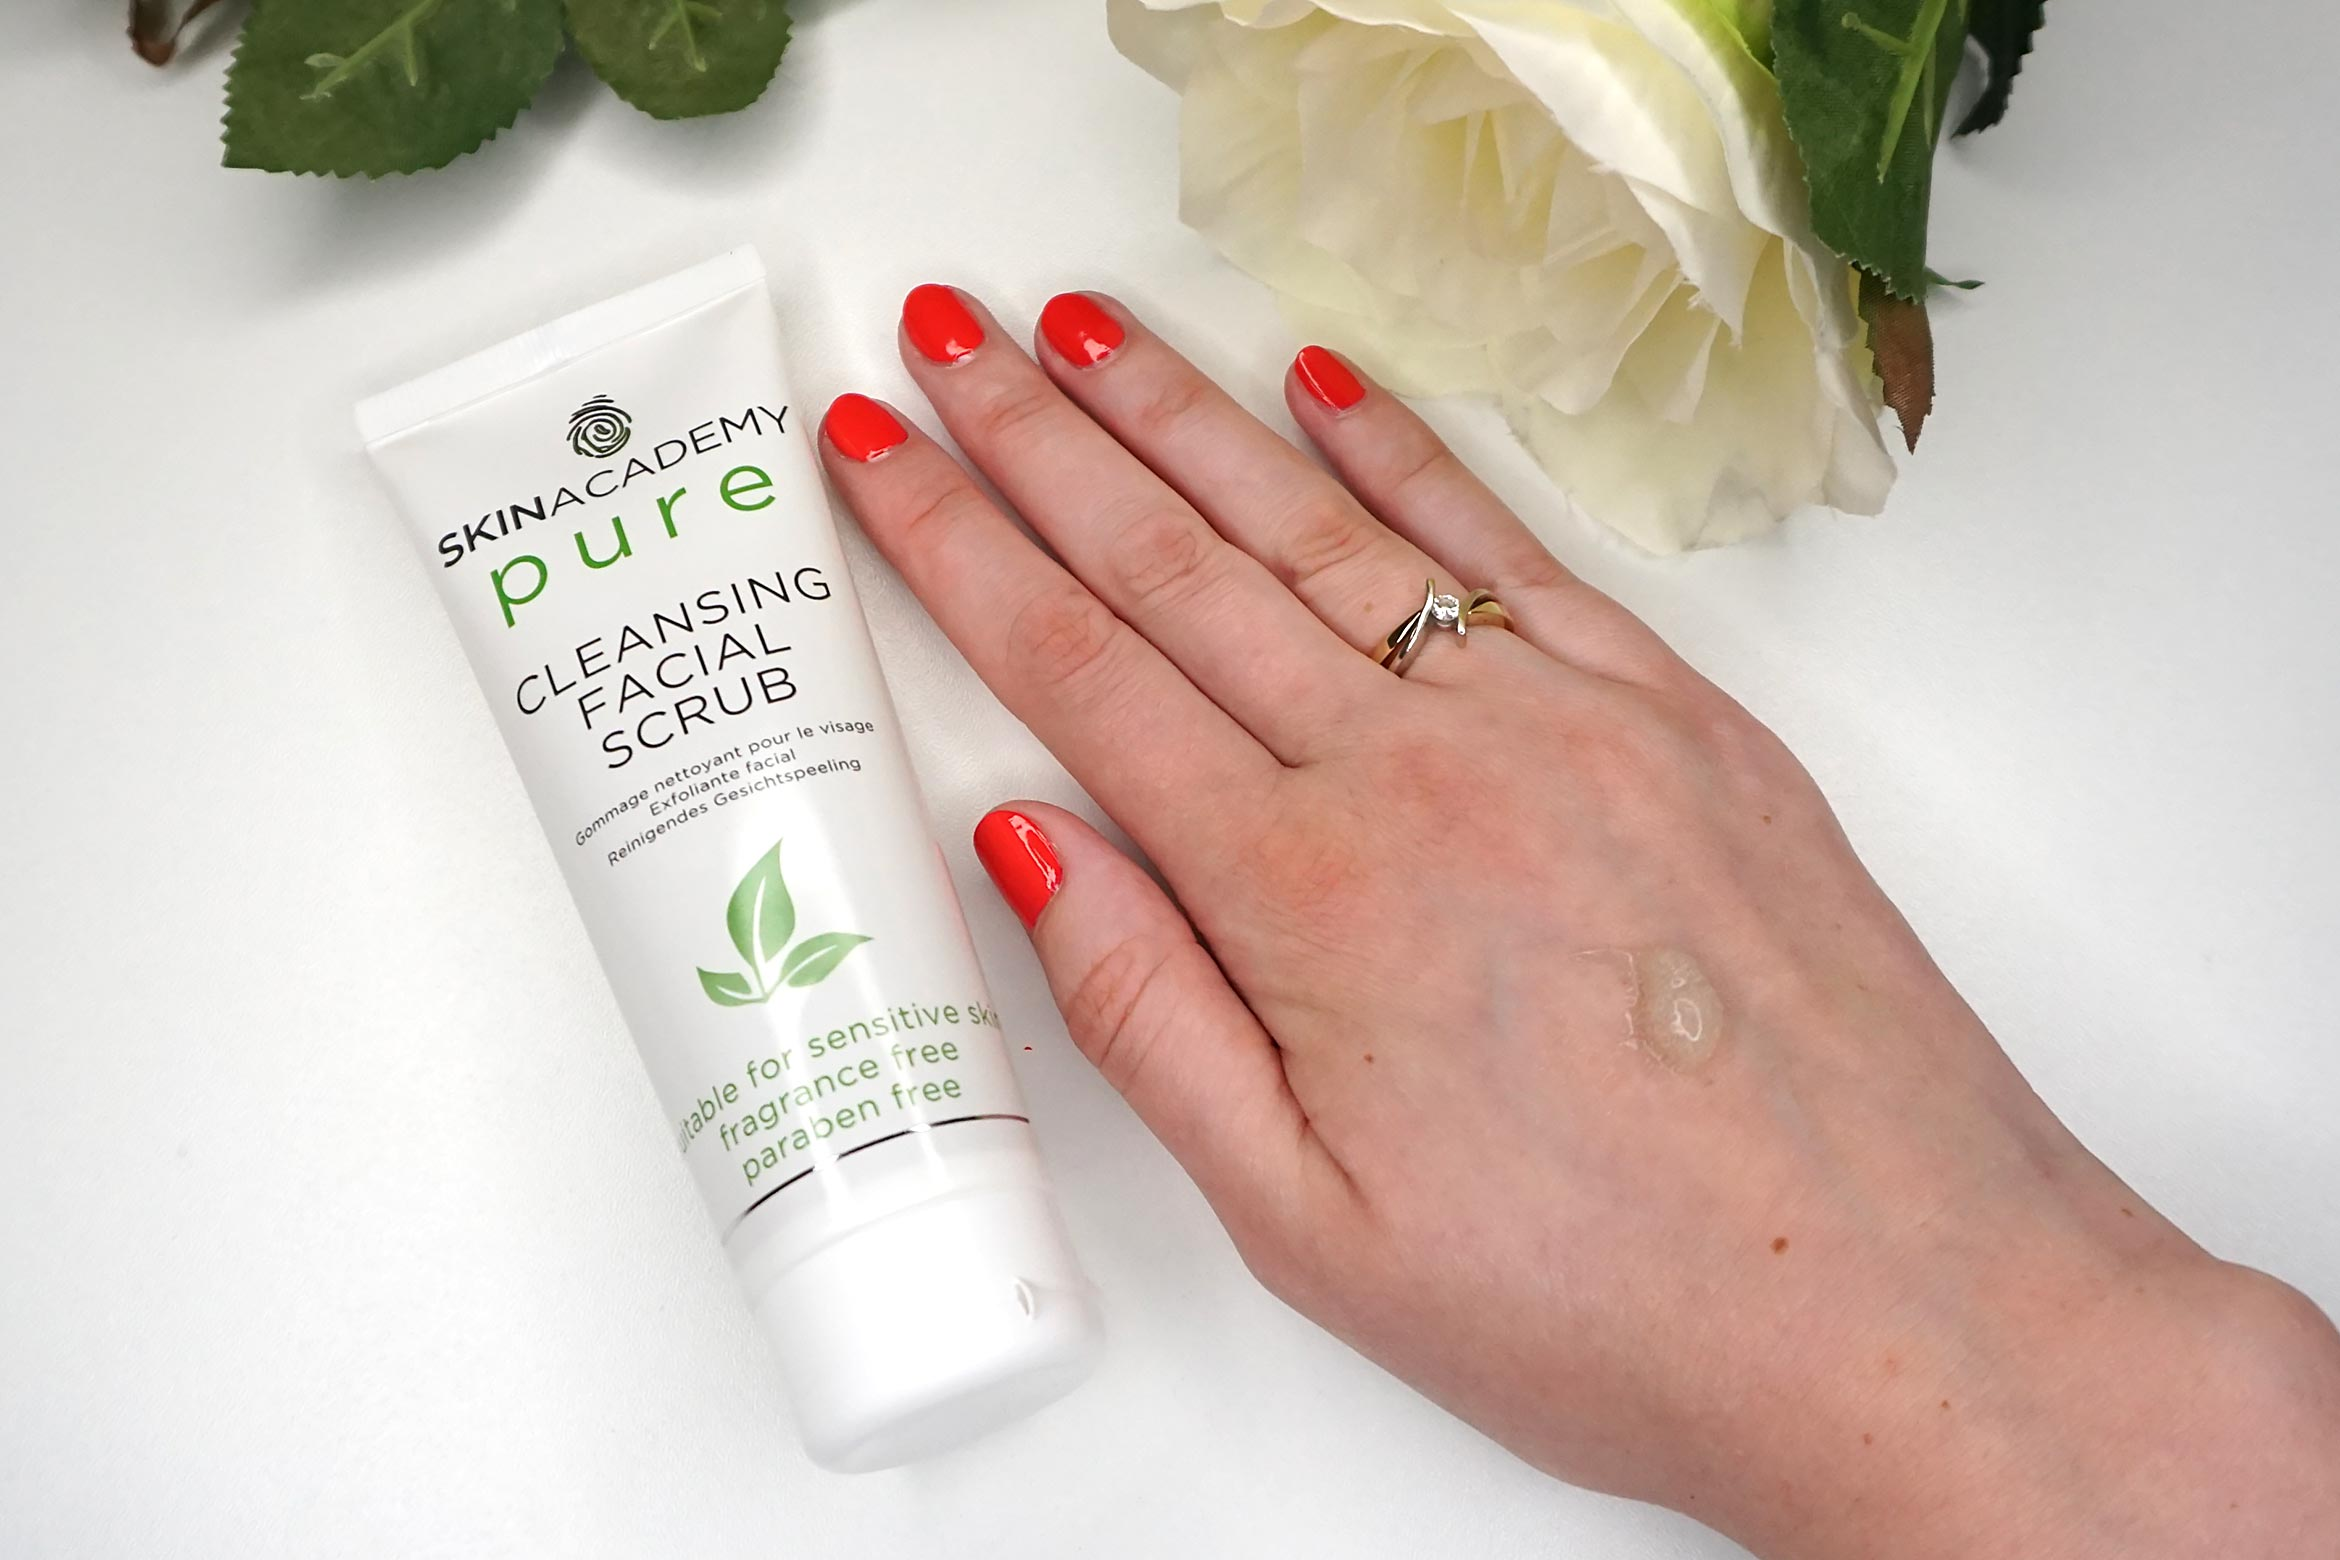 skinacademy-pure-cleansing-facial-scrub-review-1